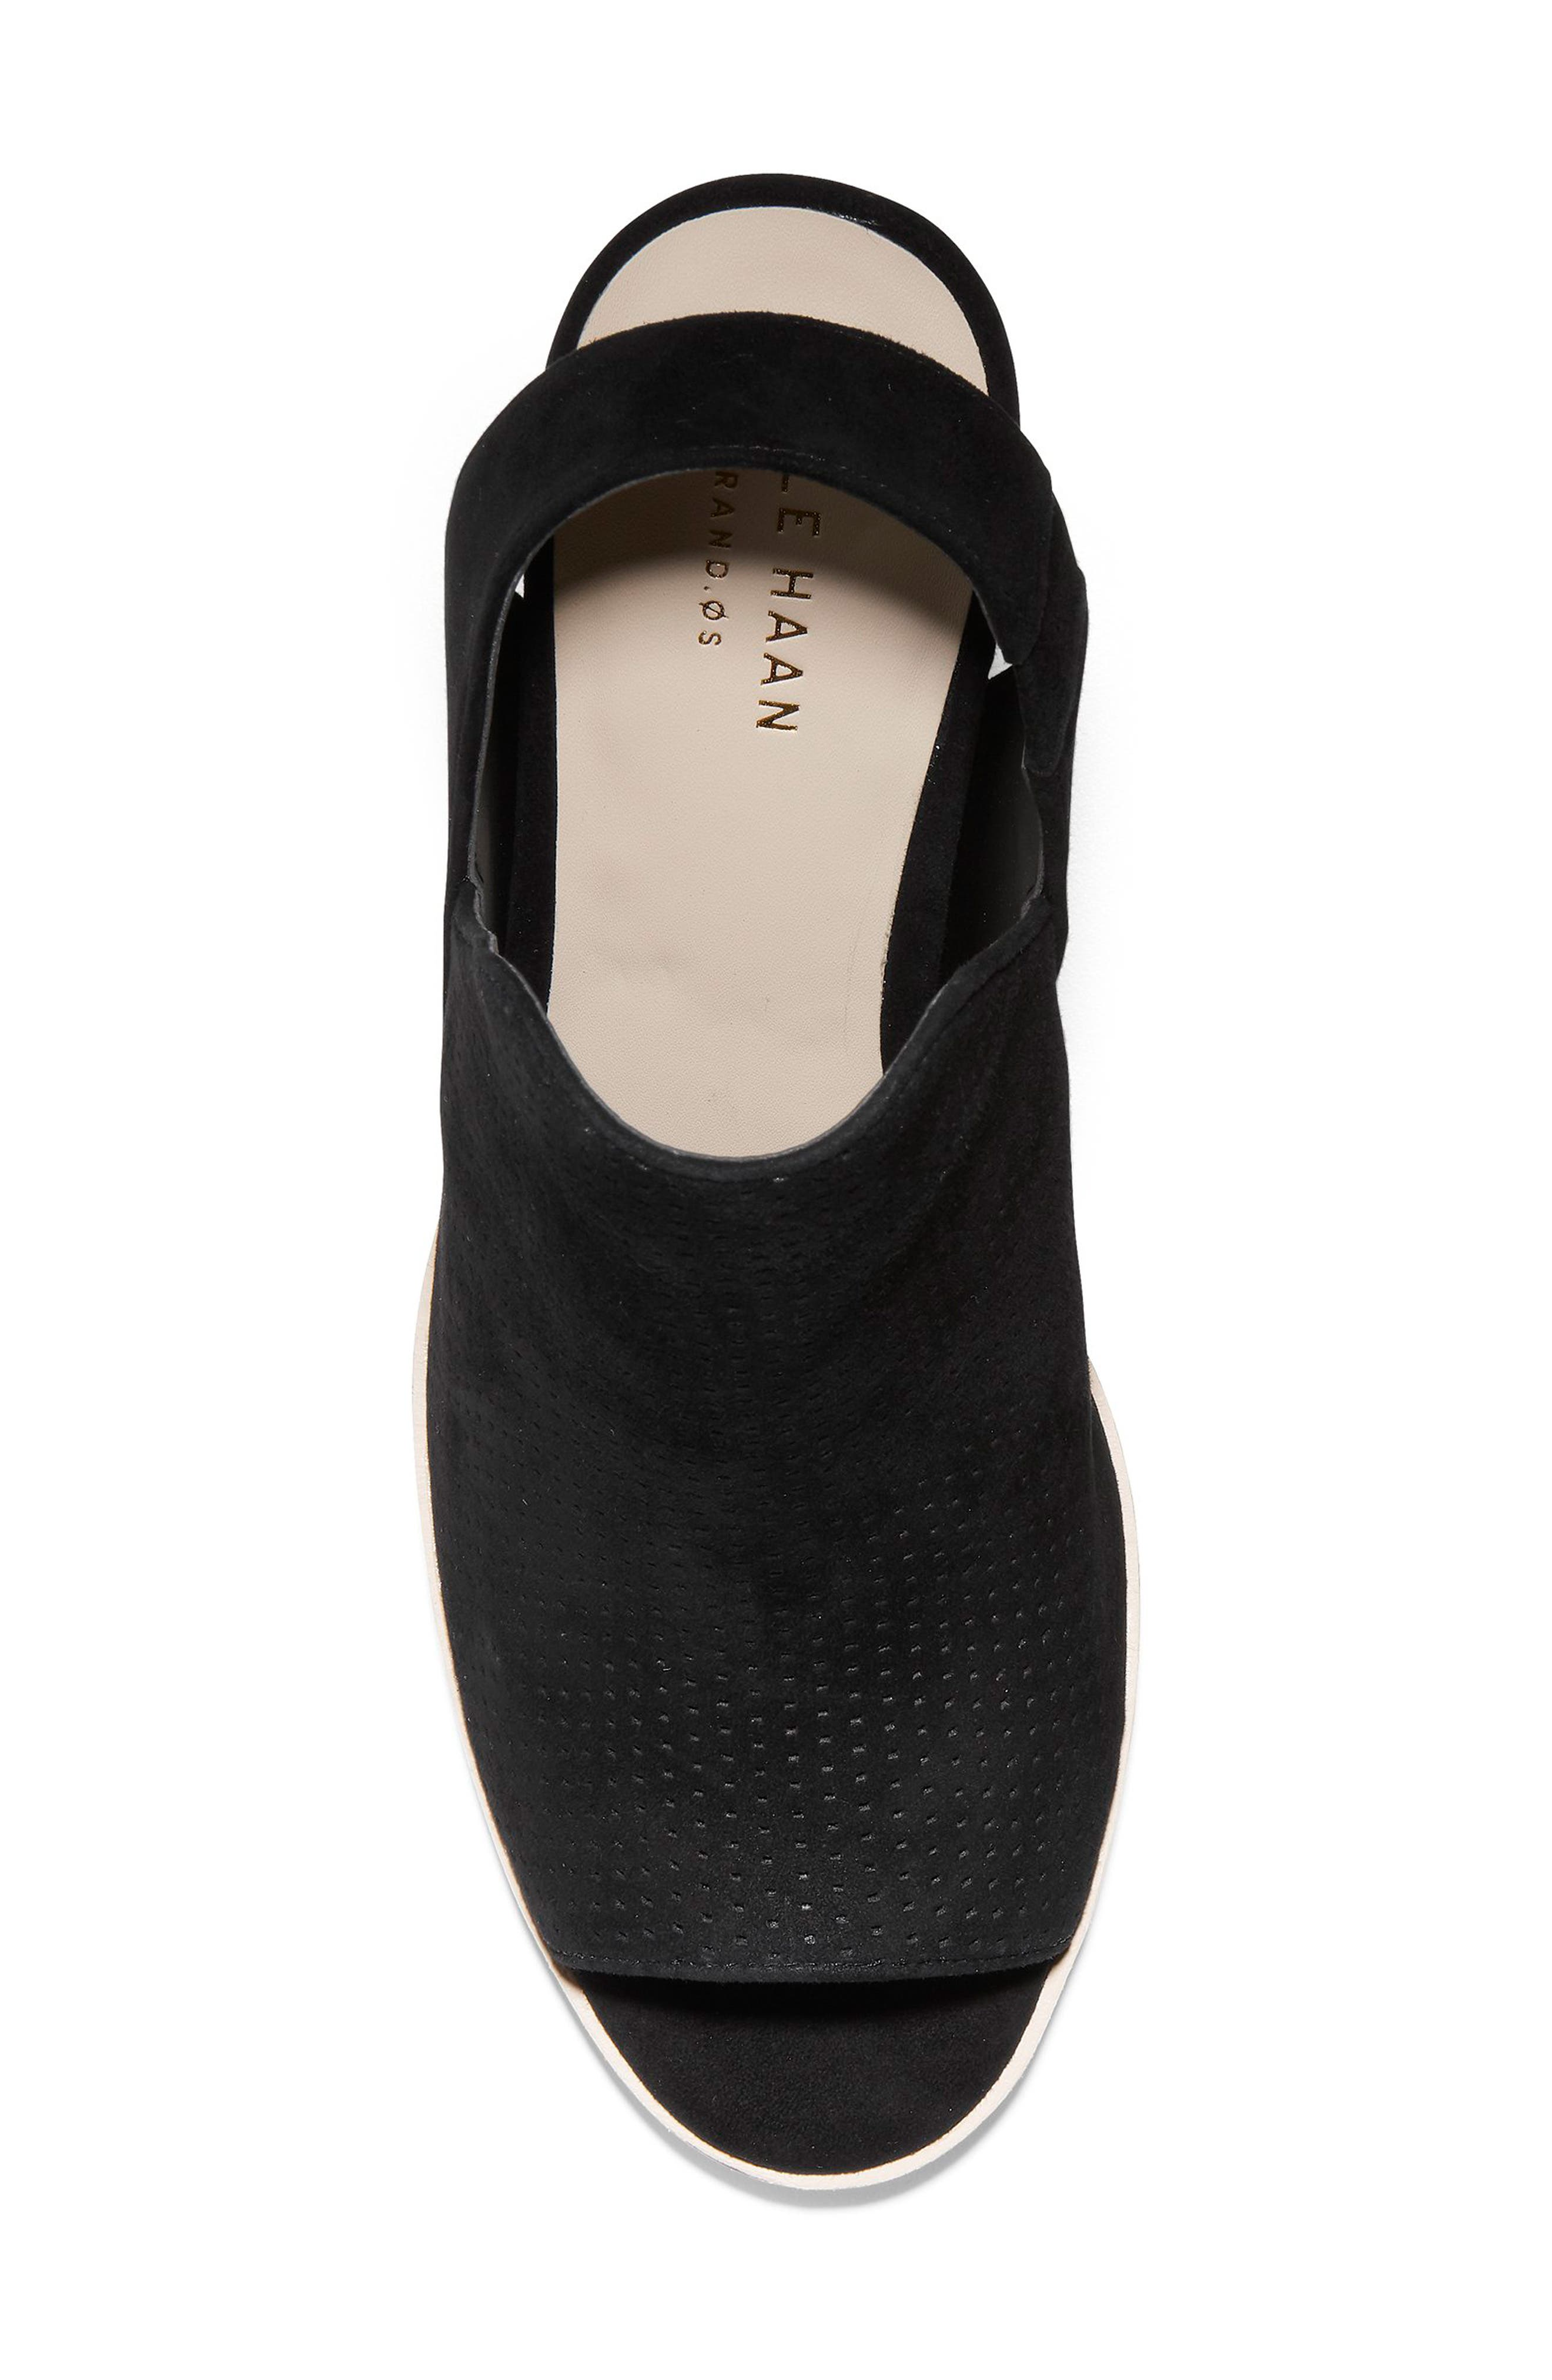 COLE HAAN, Callista Perforated Slingback Sandal, Alternate thumbnail 5, color, BLACK PERF SUEDE